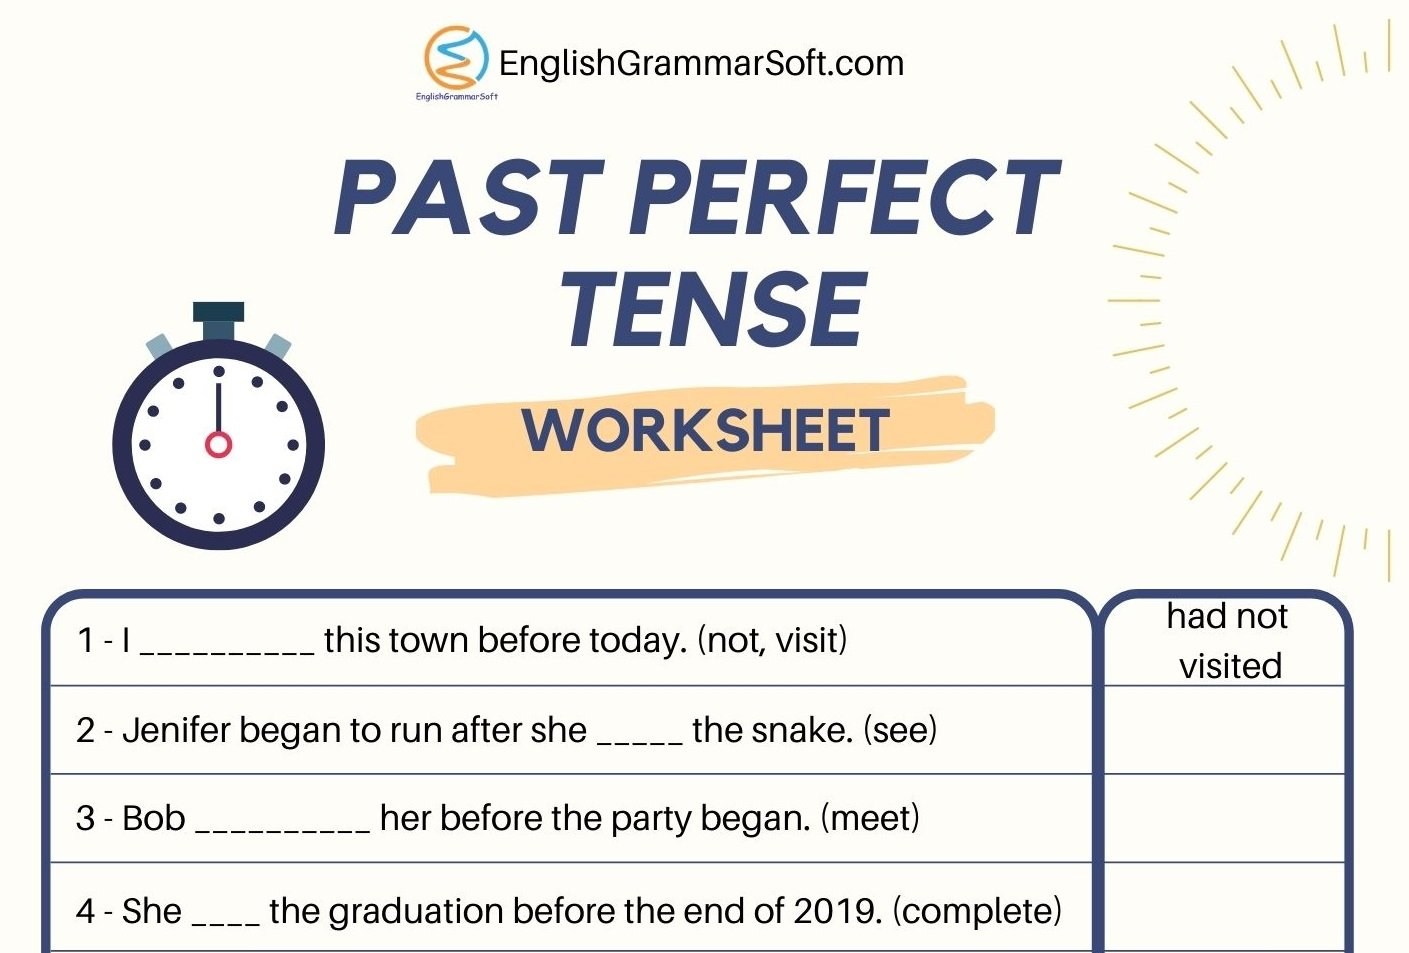 Worksheet for Past Perfect Tense